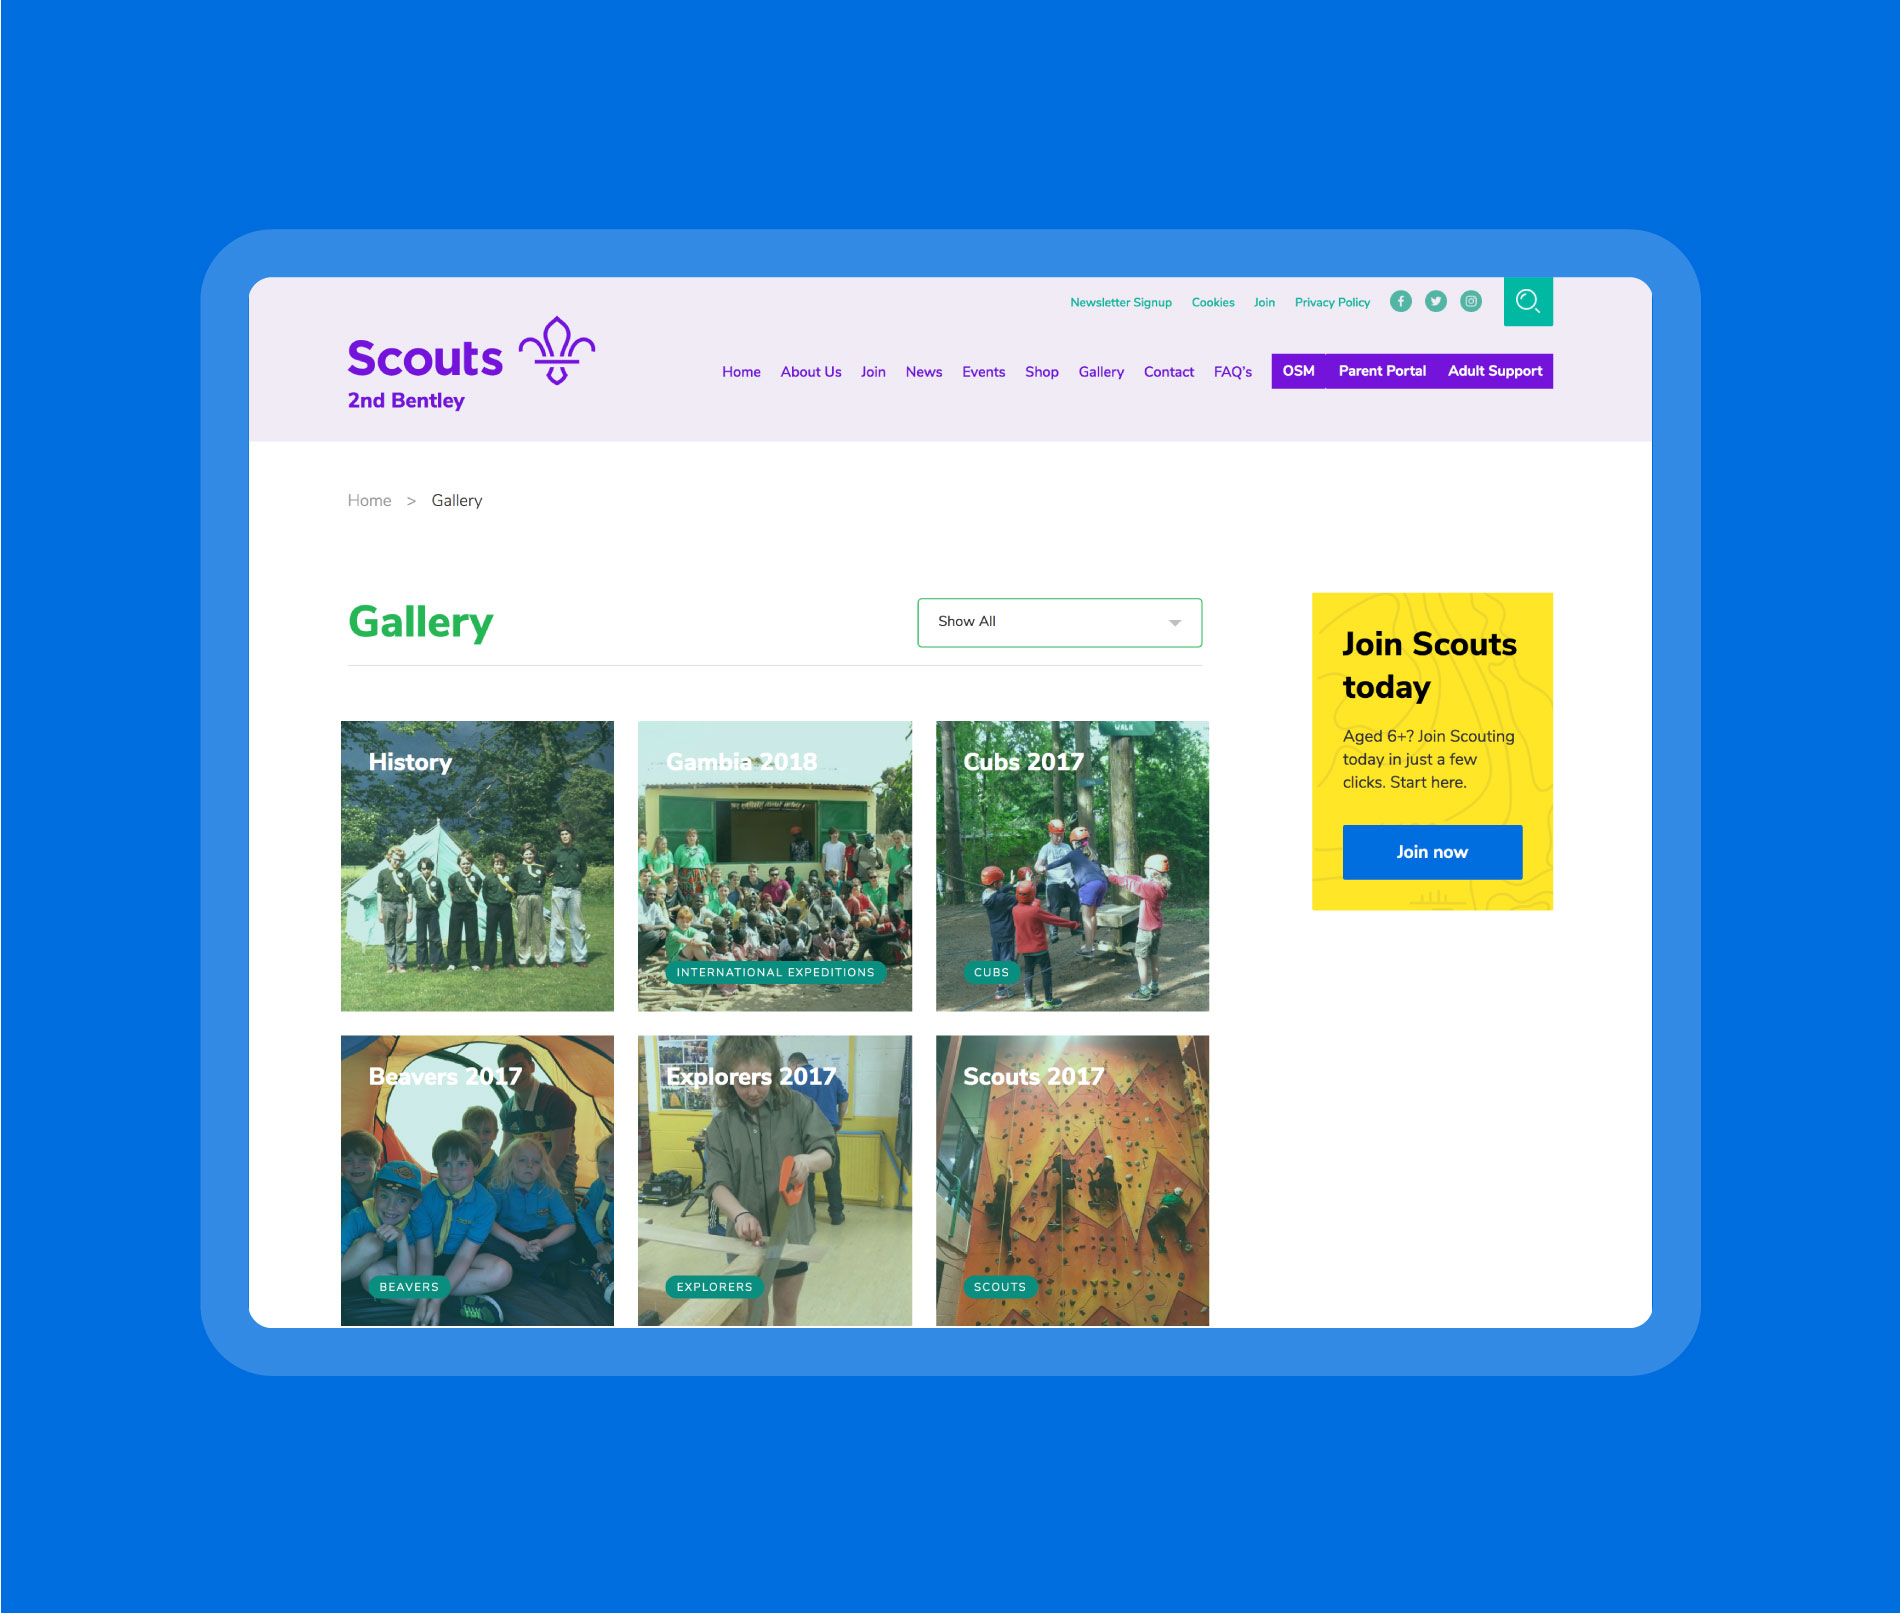 Galleries can be used to keep track of all of the Summer activities your Scouts or Guides get involved in!